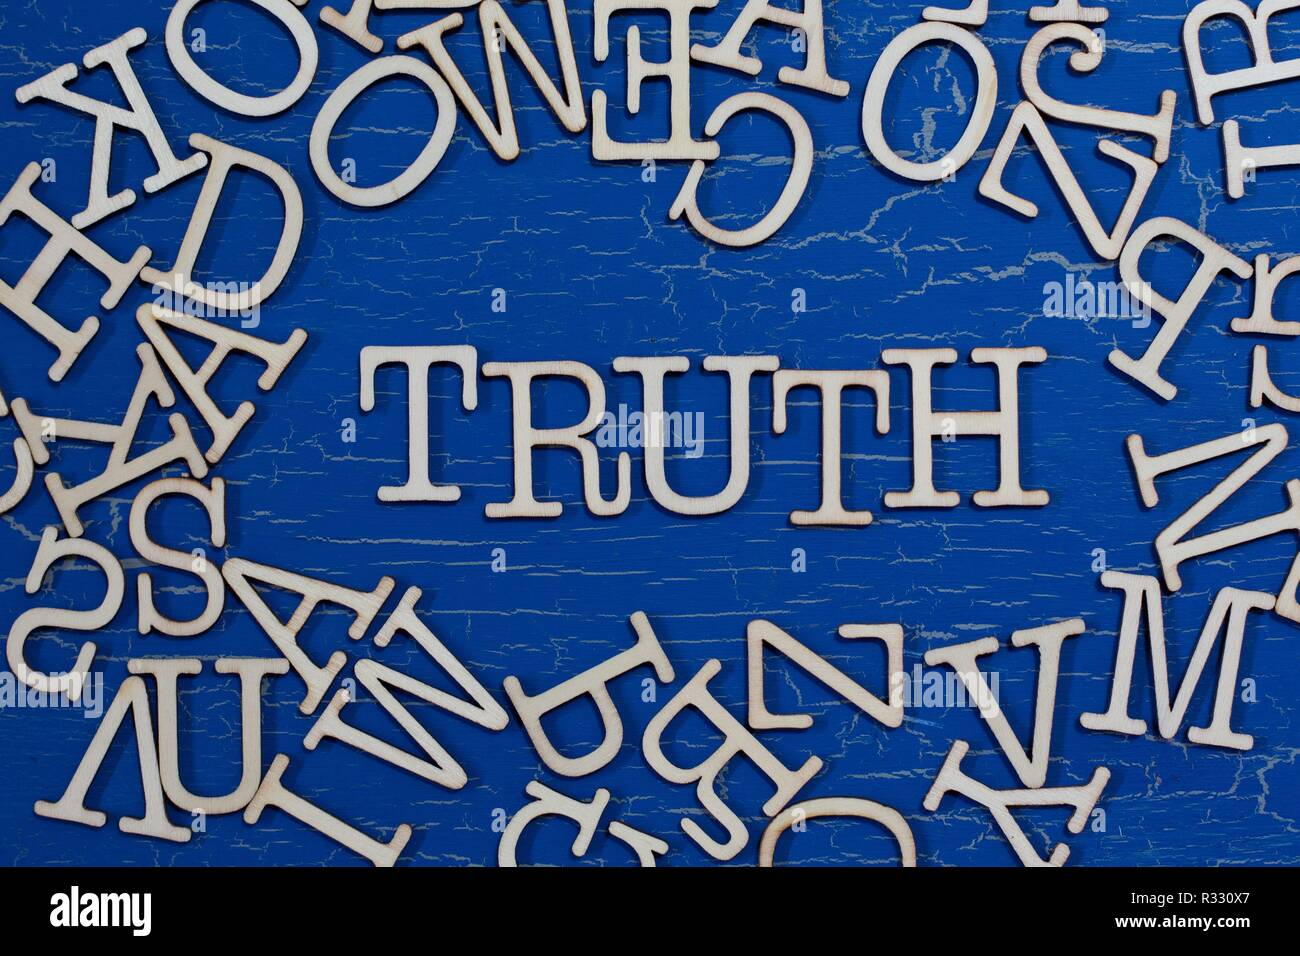 The word 'TRUTH' spelled out among a jumble of letters. - Stock Image